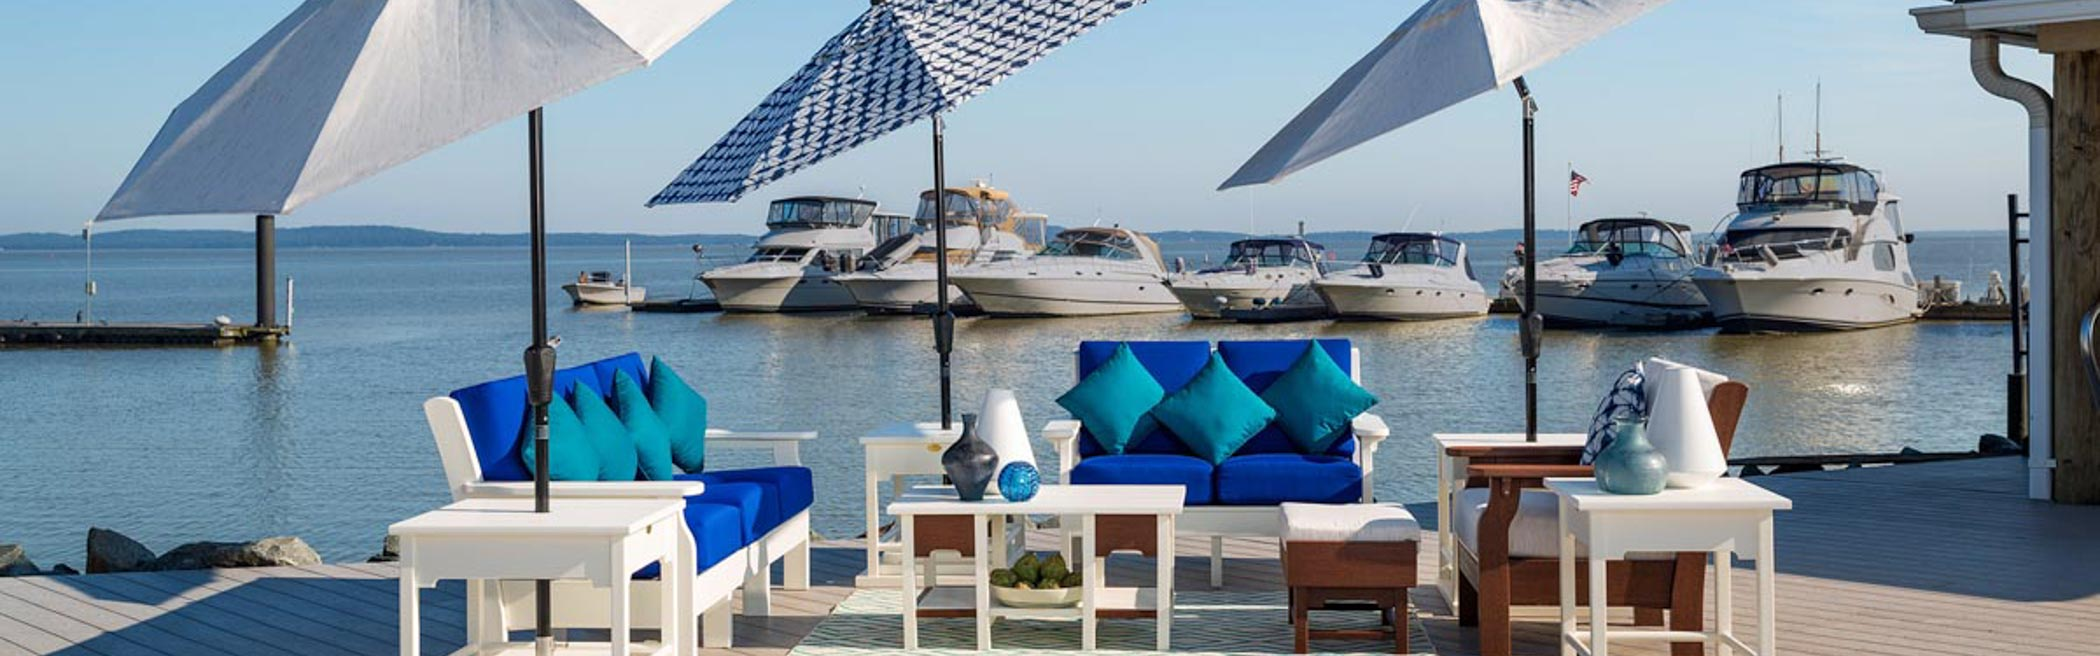 Van Buren Sofa, Love Seat, Chair, Coffee Table, End Table , Ottoman and Umbrella Stands on a dock with boats in the background